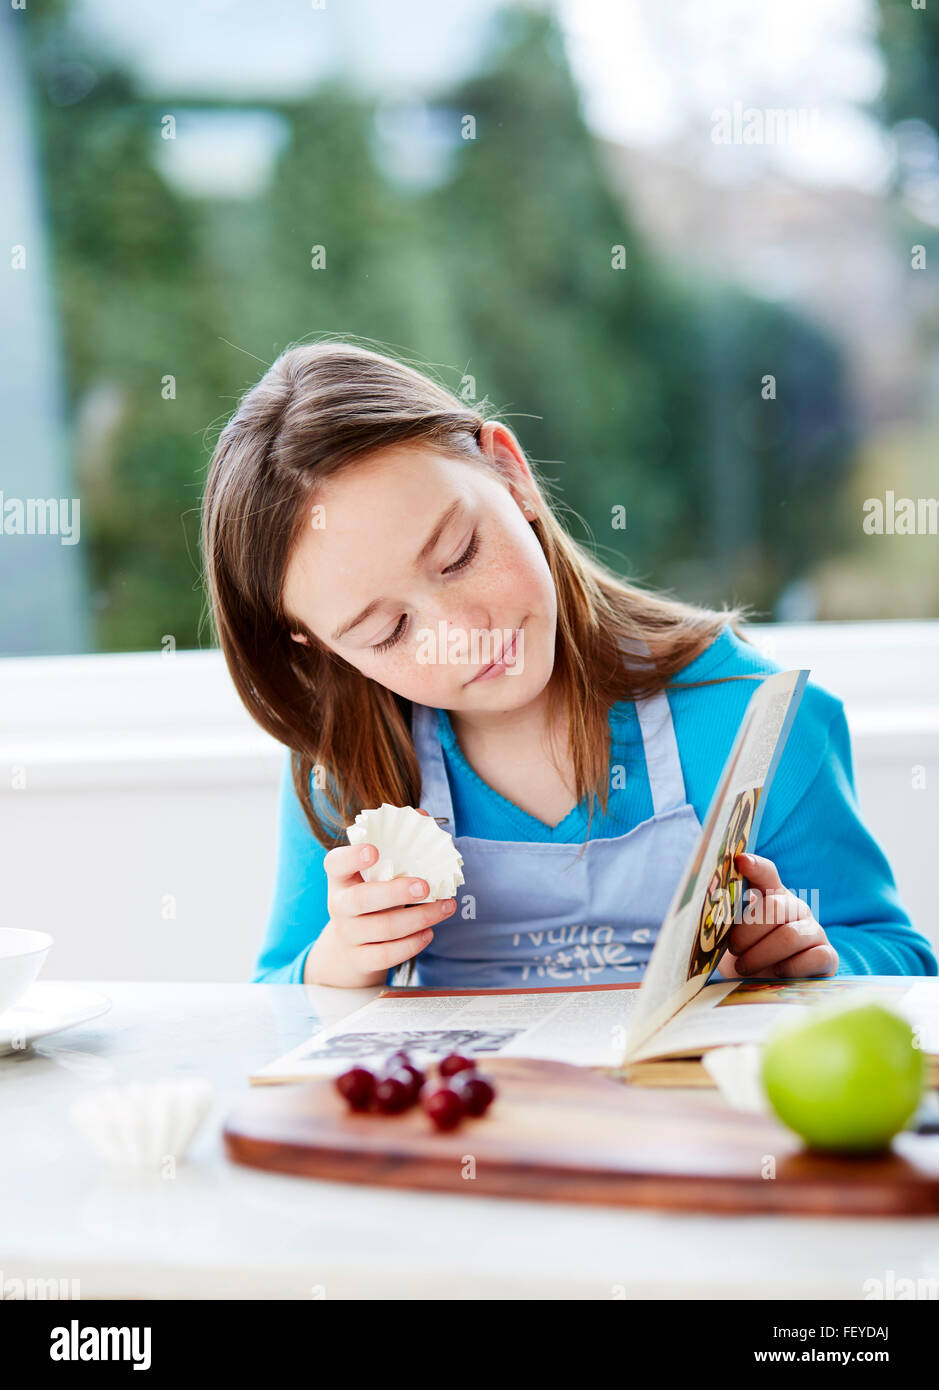 Child looking through recipe book - Stock Image